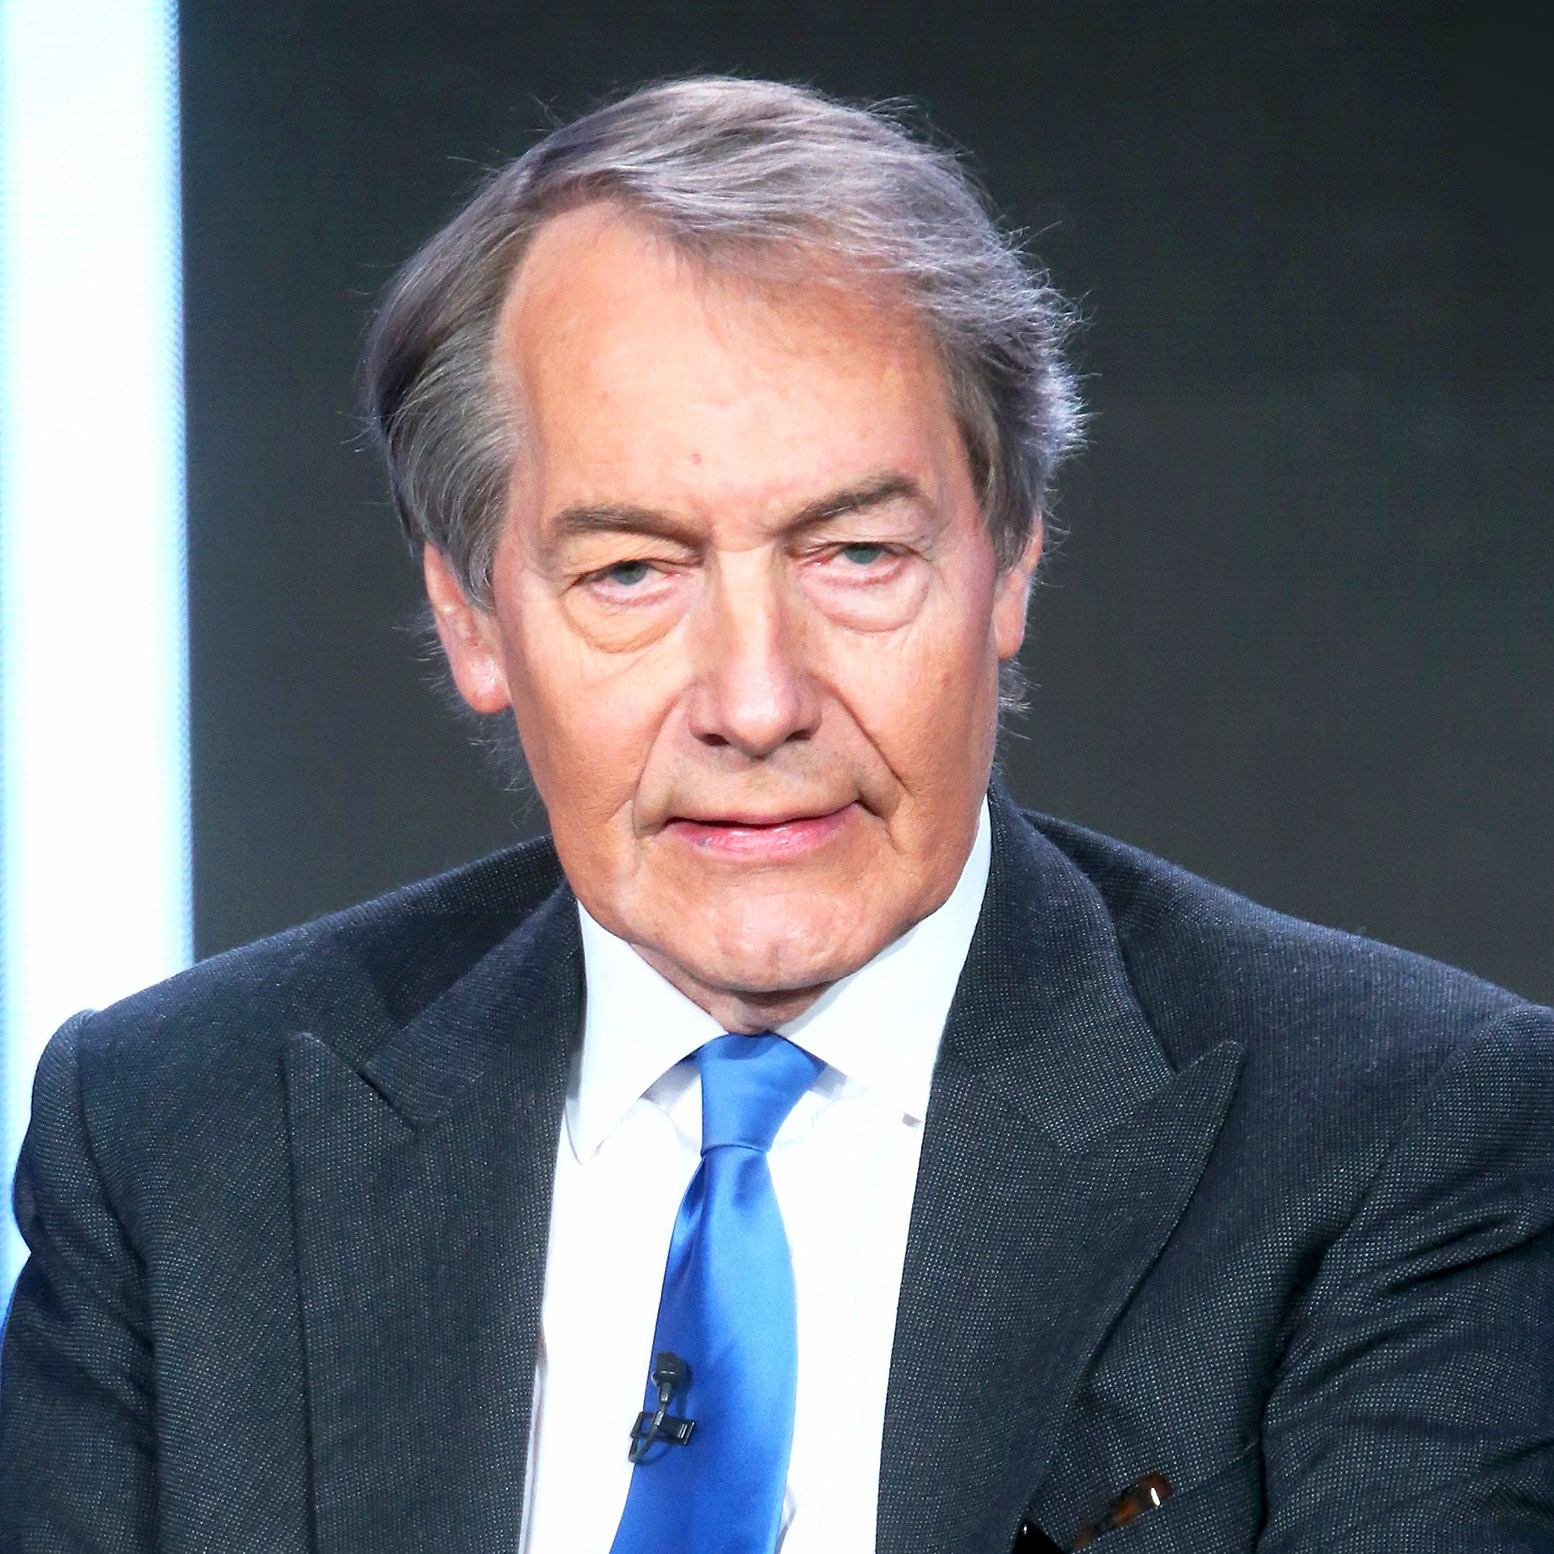 Charlie Rose speaks onstage during the 'CBS This Morning' panel discussion at the 2015 Winter TCA Tour in Pasadena, California.